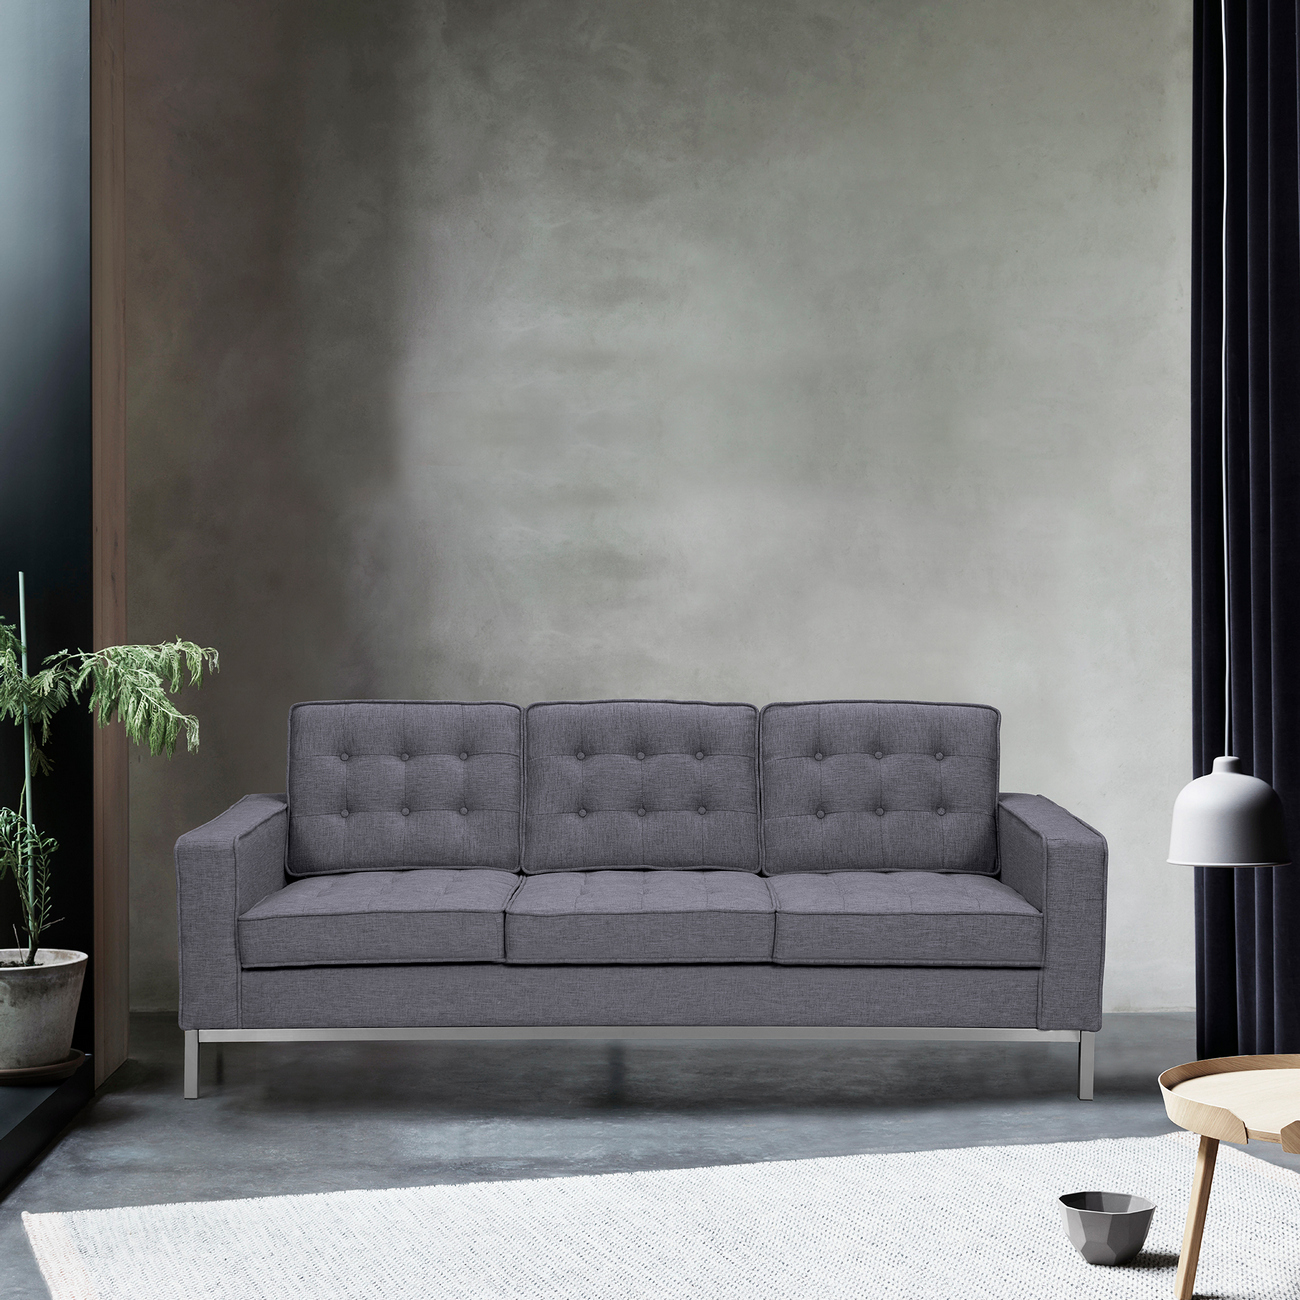 Armen Living Chandler Contemporary Sofa Brushed Stainless Steel